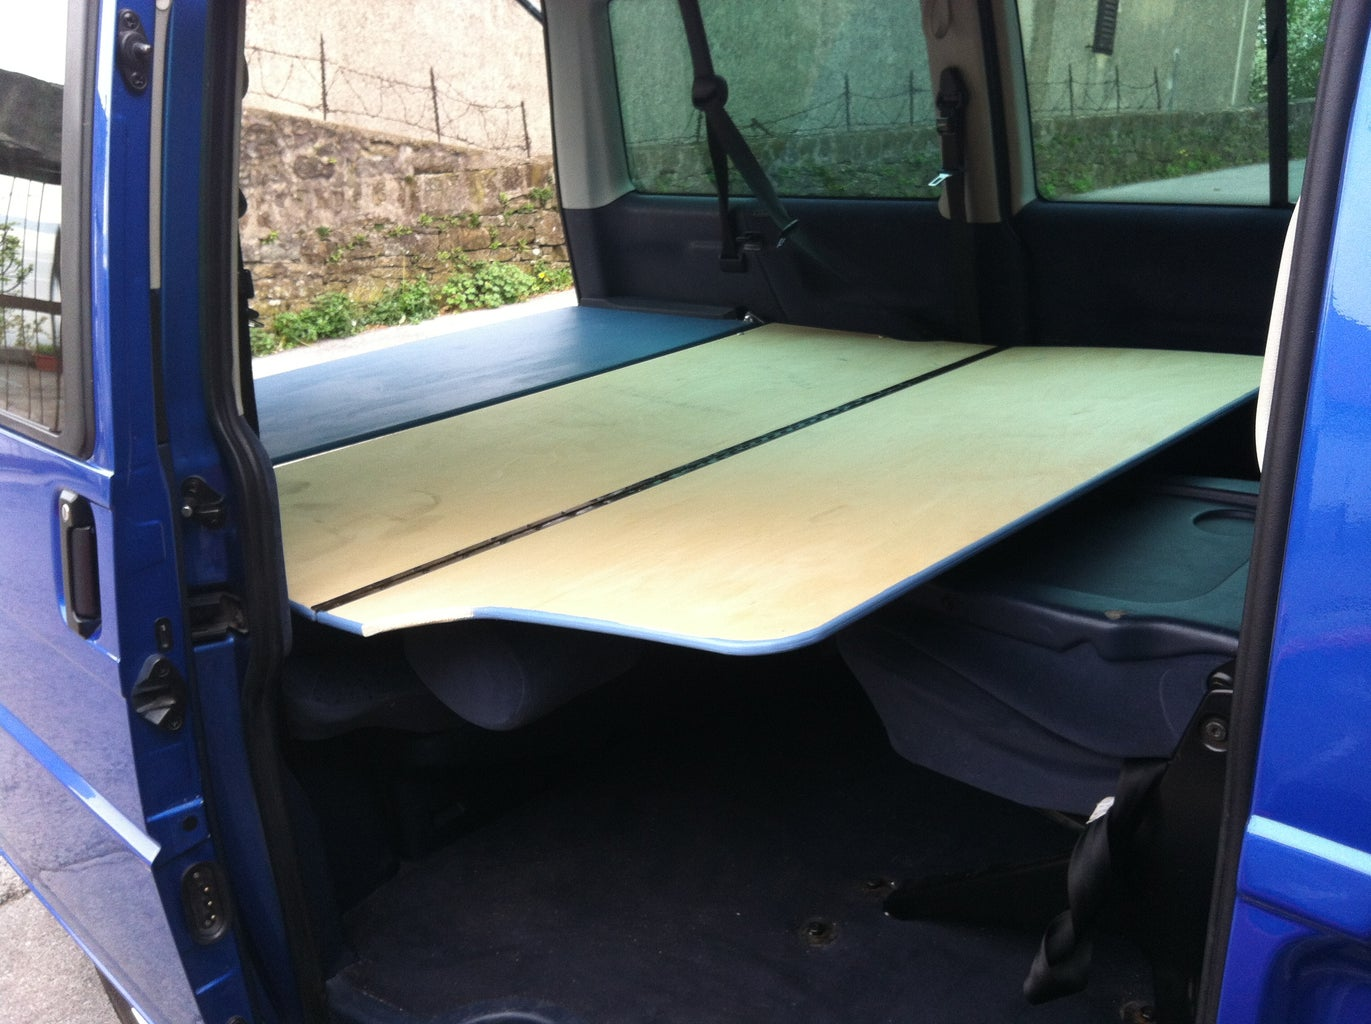 Simple Conversion of VW T4 Caravelle 9 Seats in a Campervan